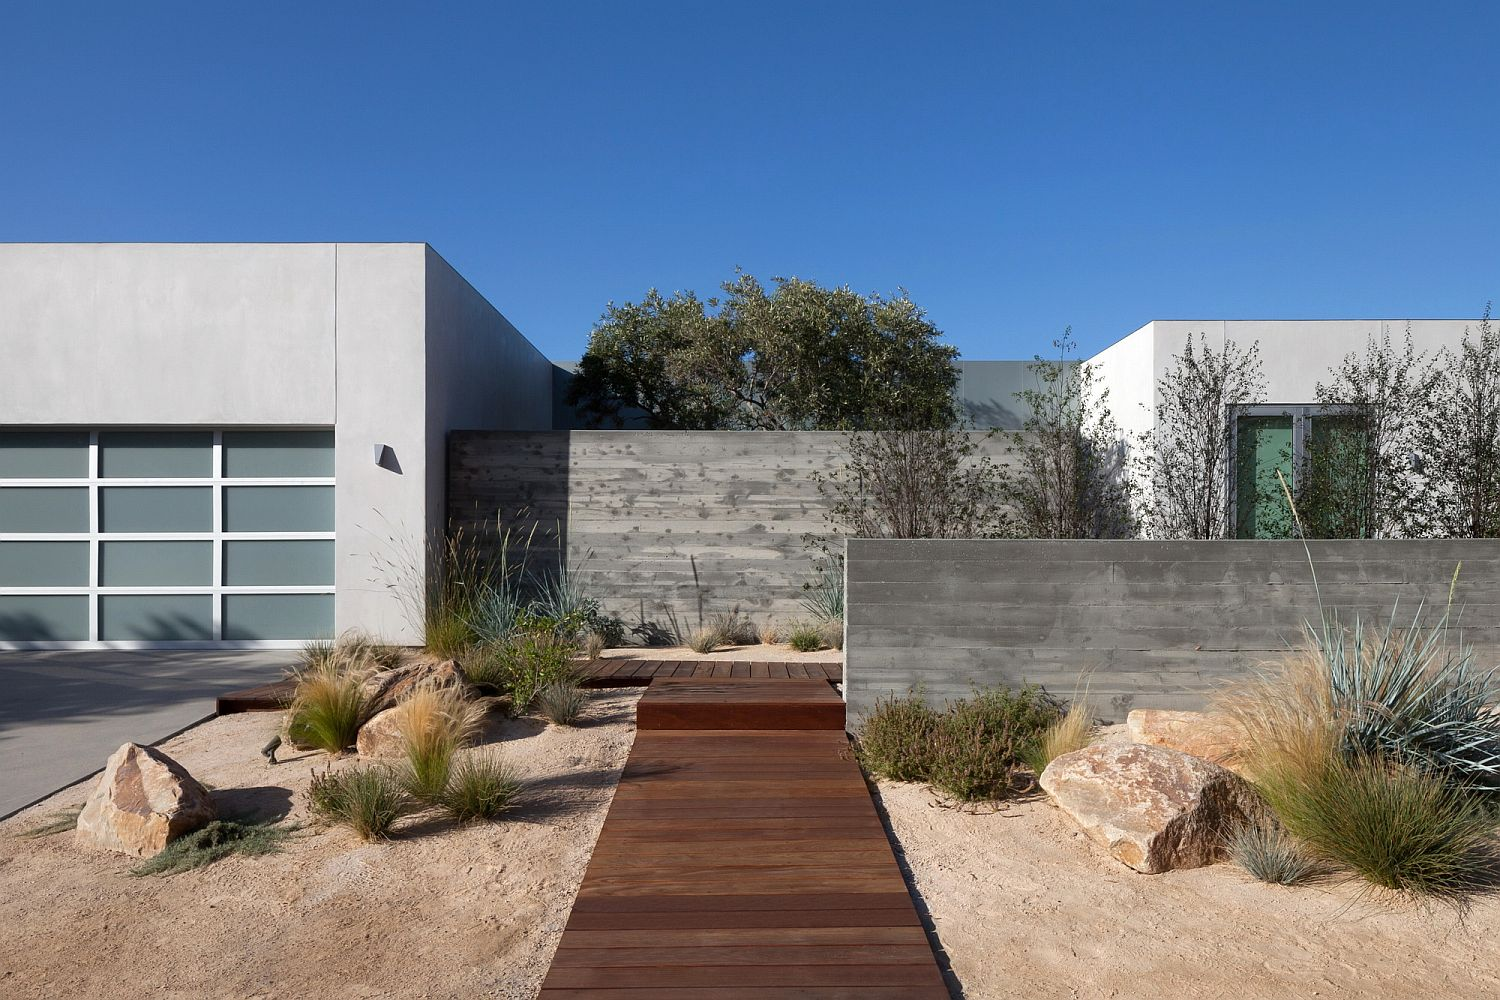 Curated front yard with a wooden walkway